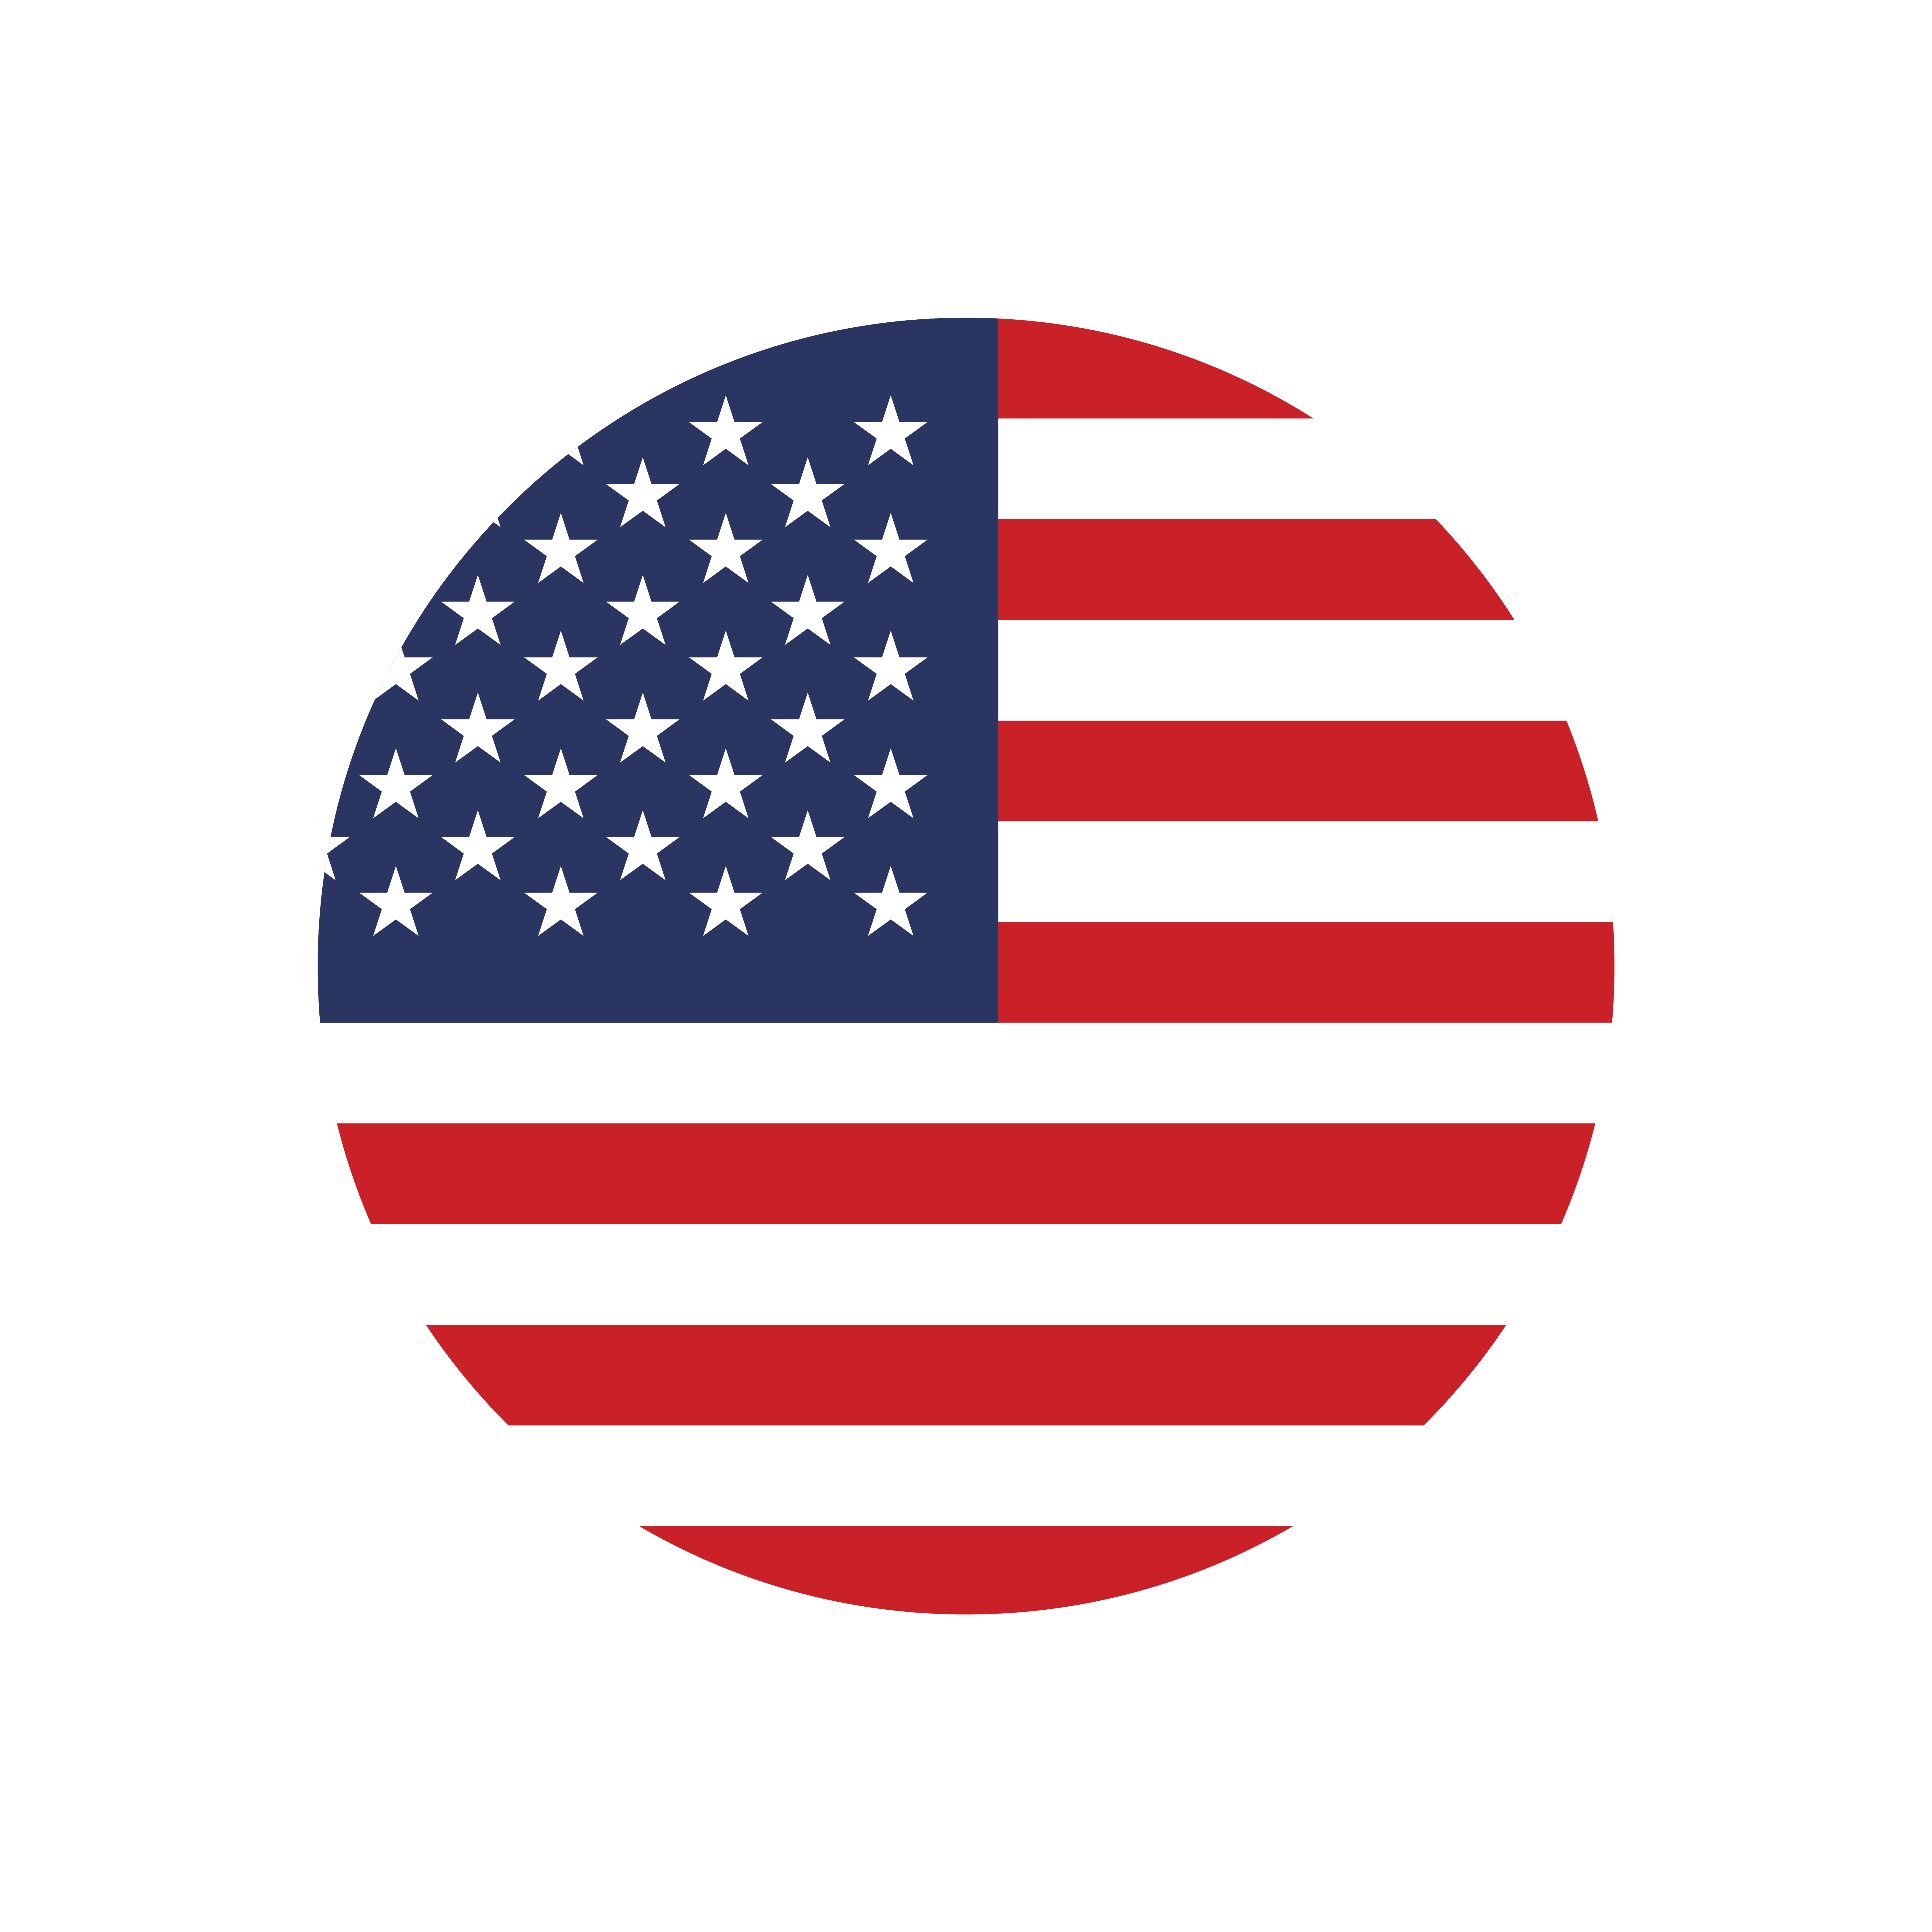 Made in the USA badge